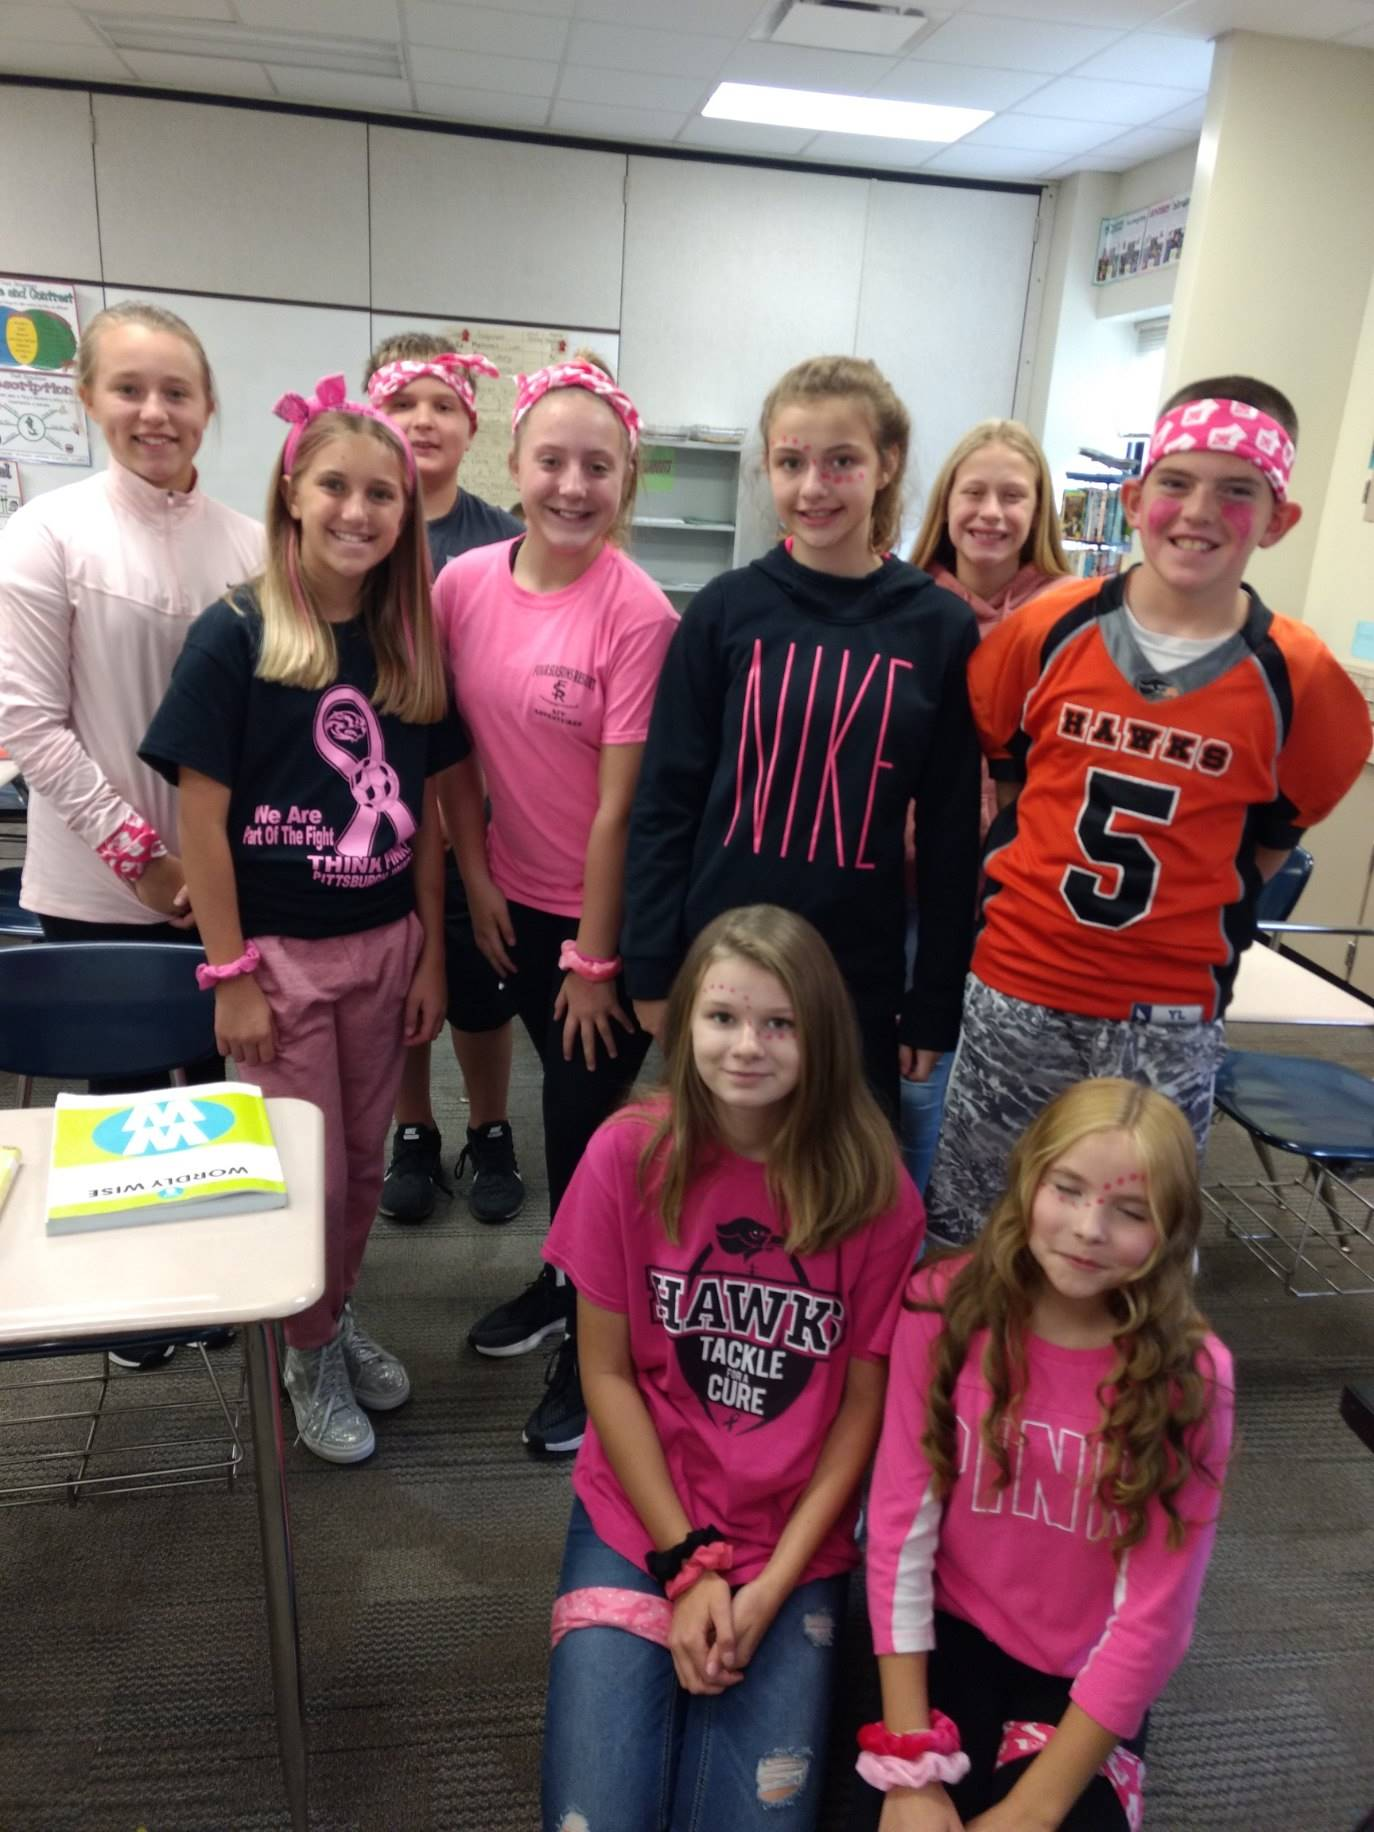 Group of students showing their support for the Pink Out